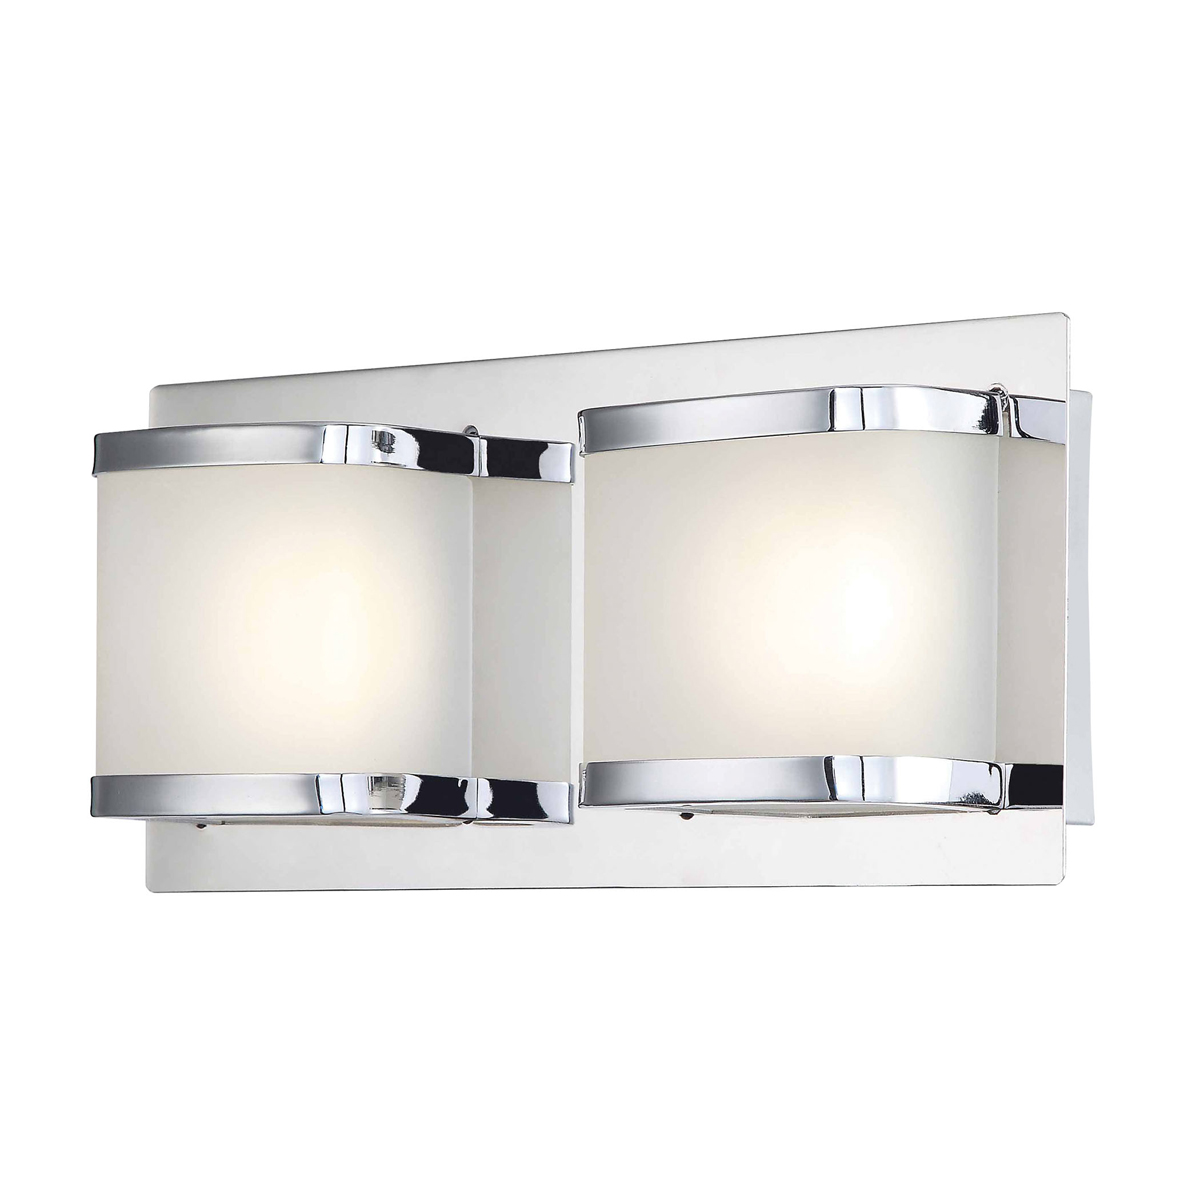 alico lighting bvl4002 10 15 bandeau 2 light led vanity fixture in chrome. Black Bedroom Furniture Sets. Home Design Ideas